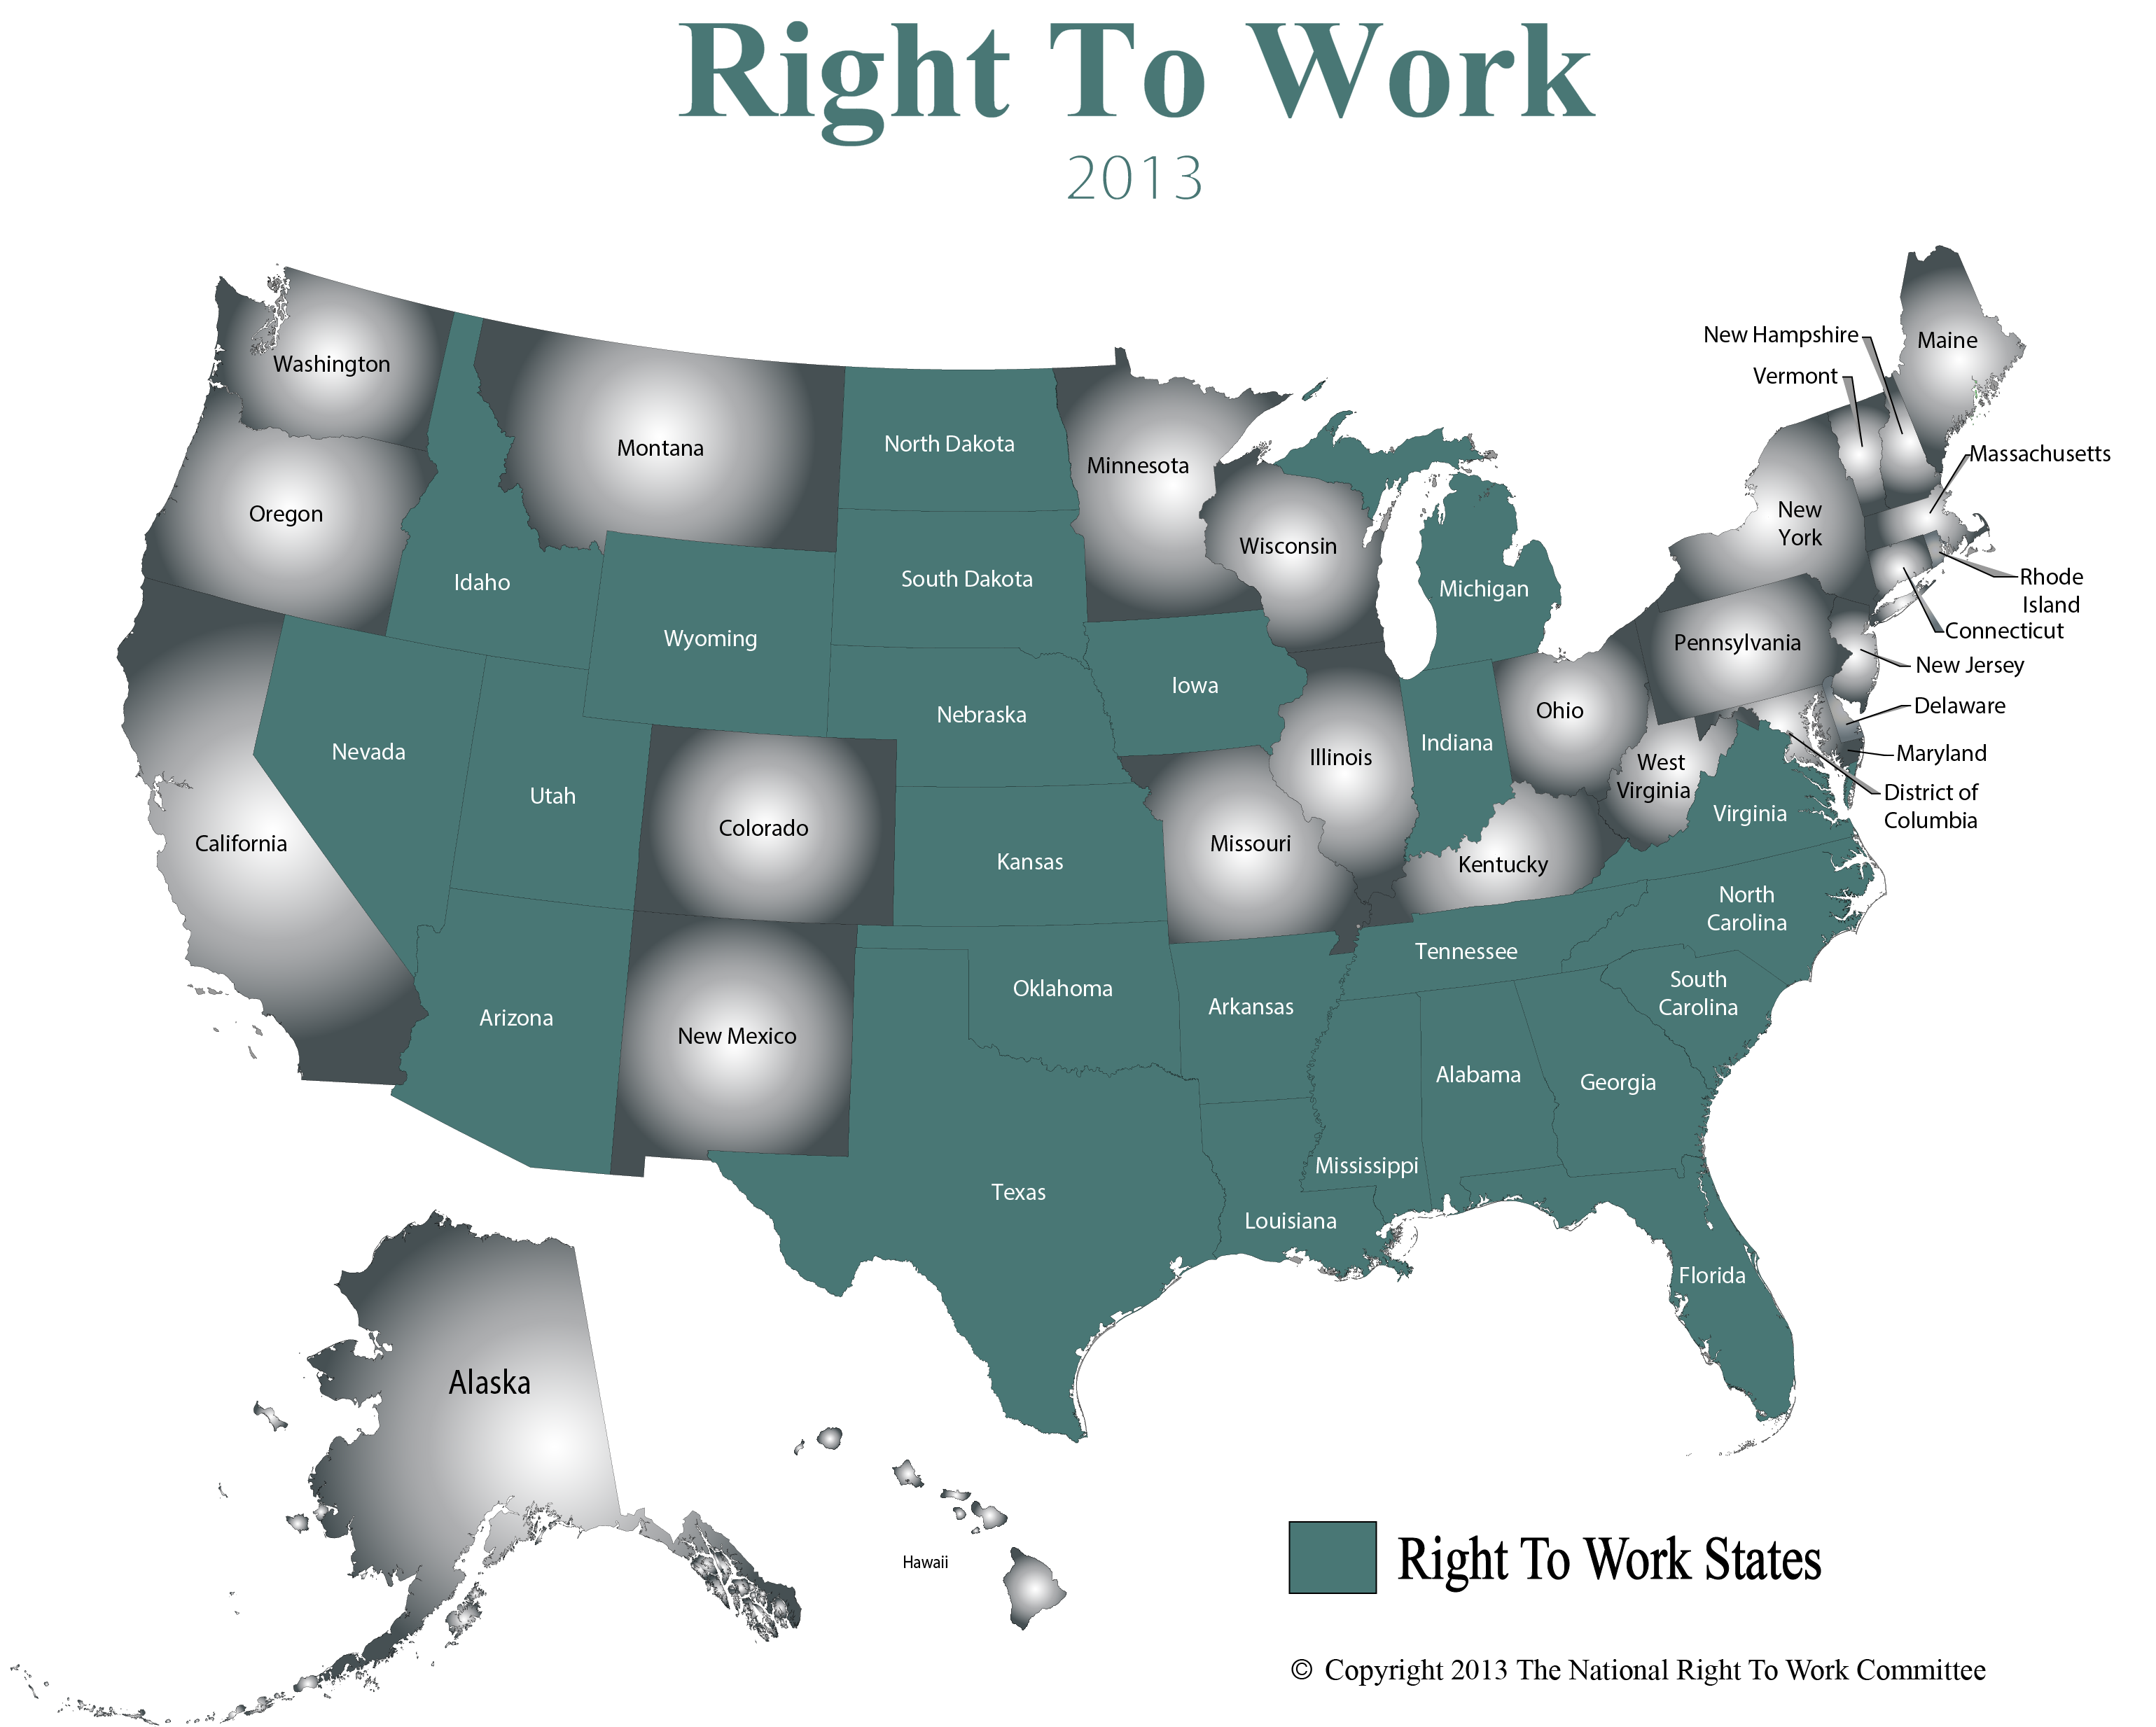 Labor Union States Map.What Does Right To Work Mean Nrtwc Org